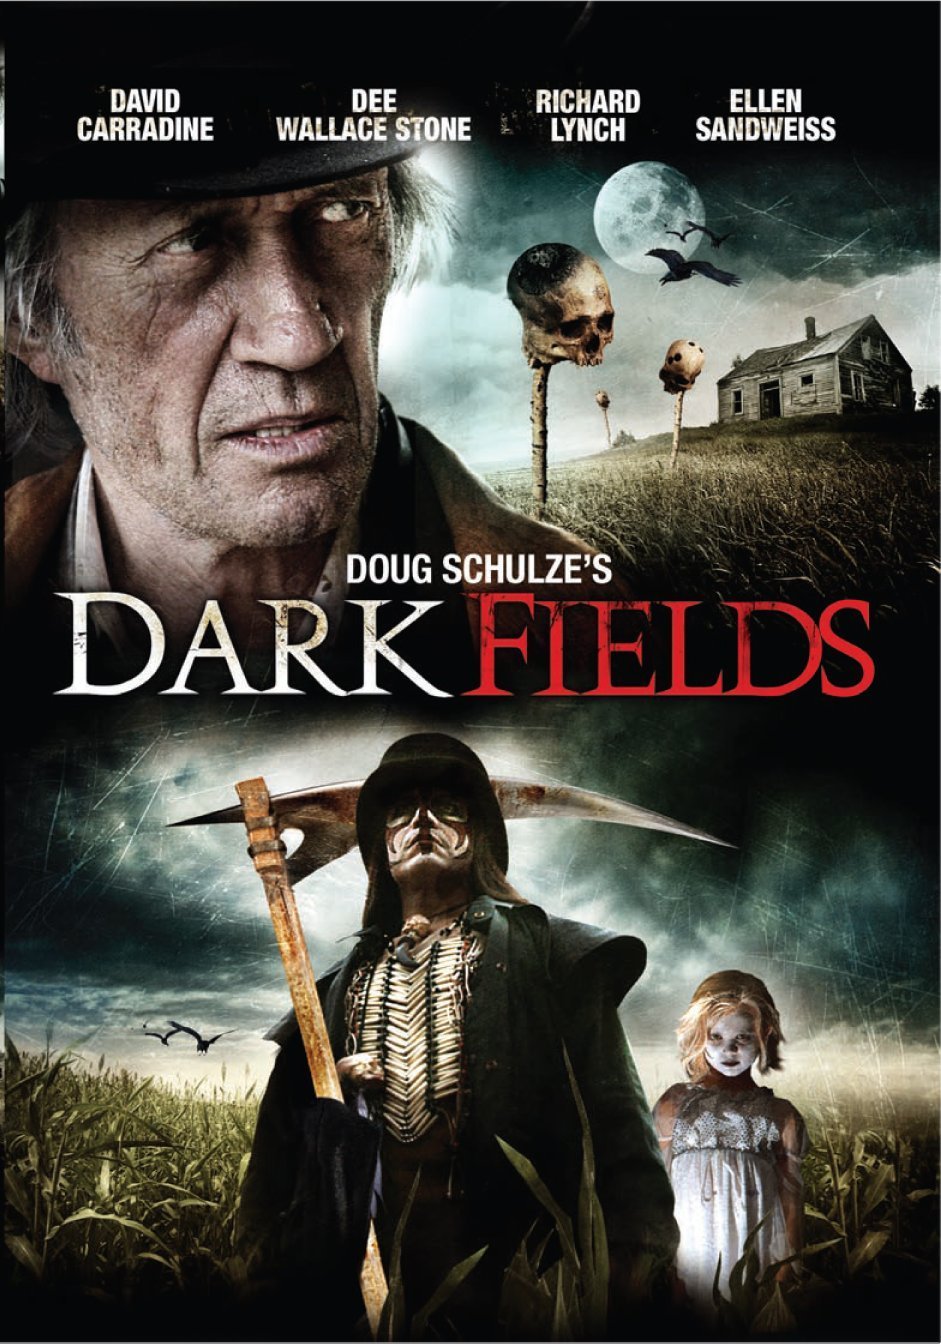 Dark Fields (2009) - IMDb